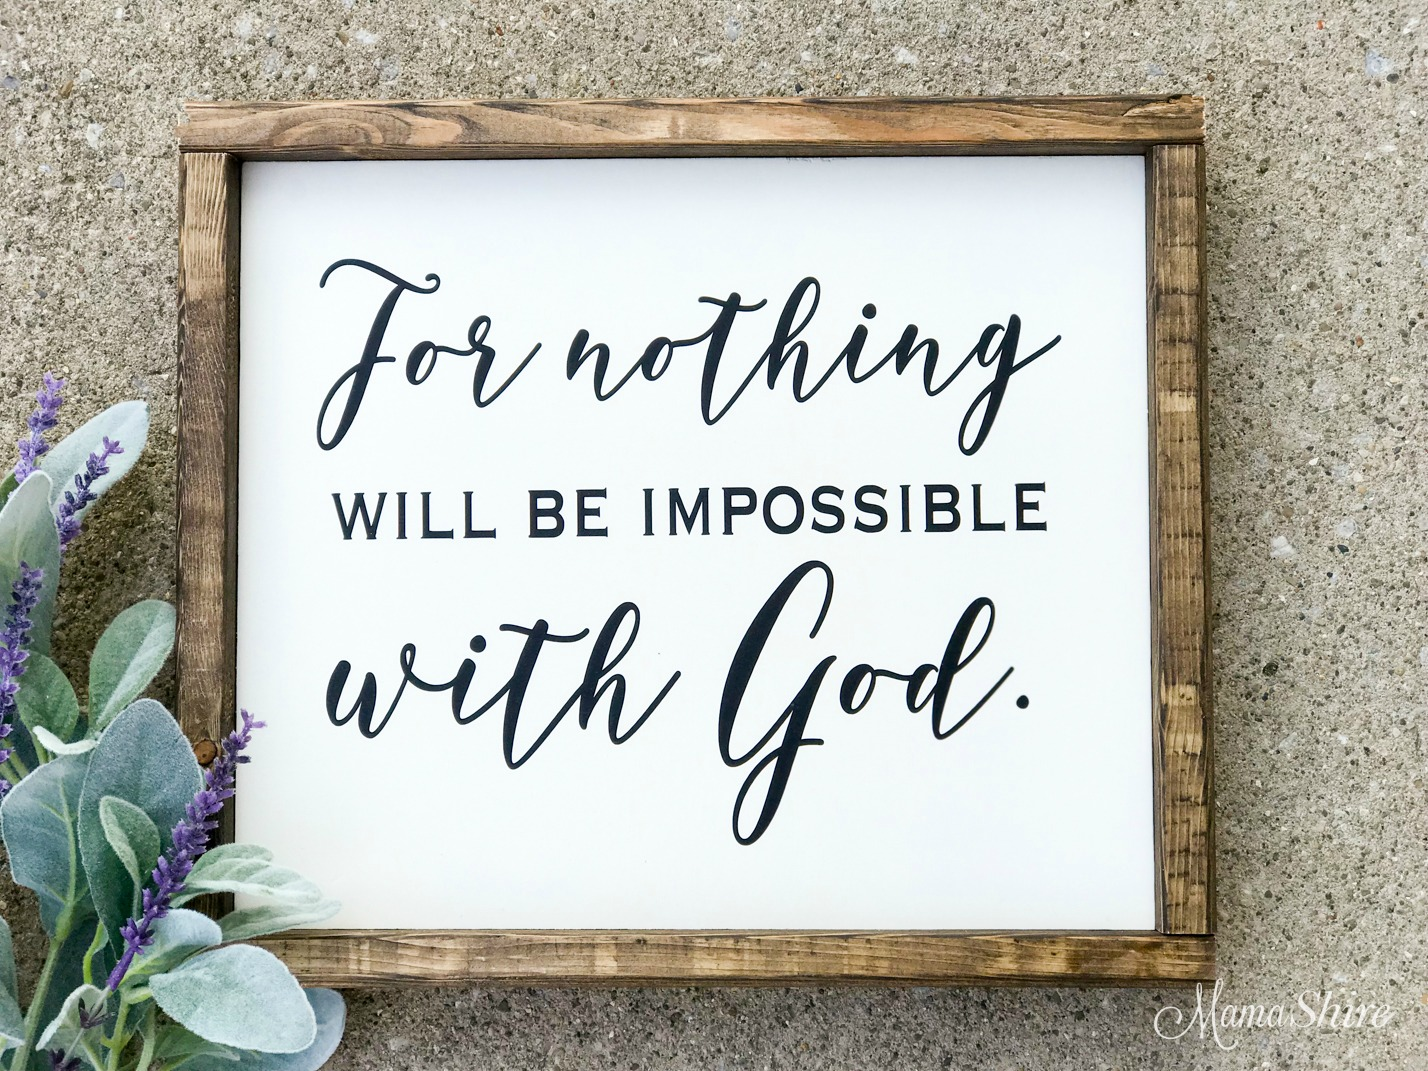 Nothing will be impossible with God wood sign made with an SVG cut file.